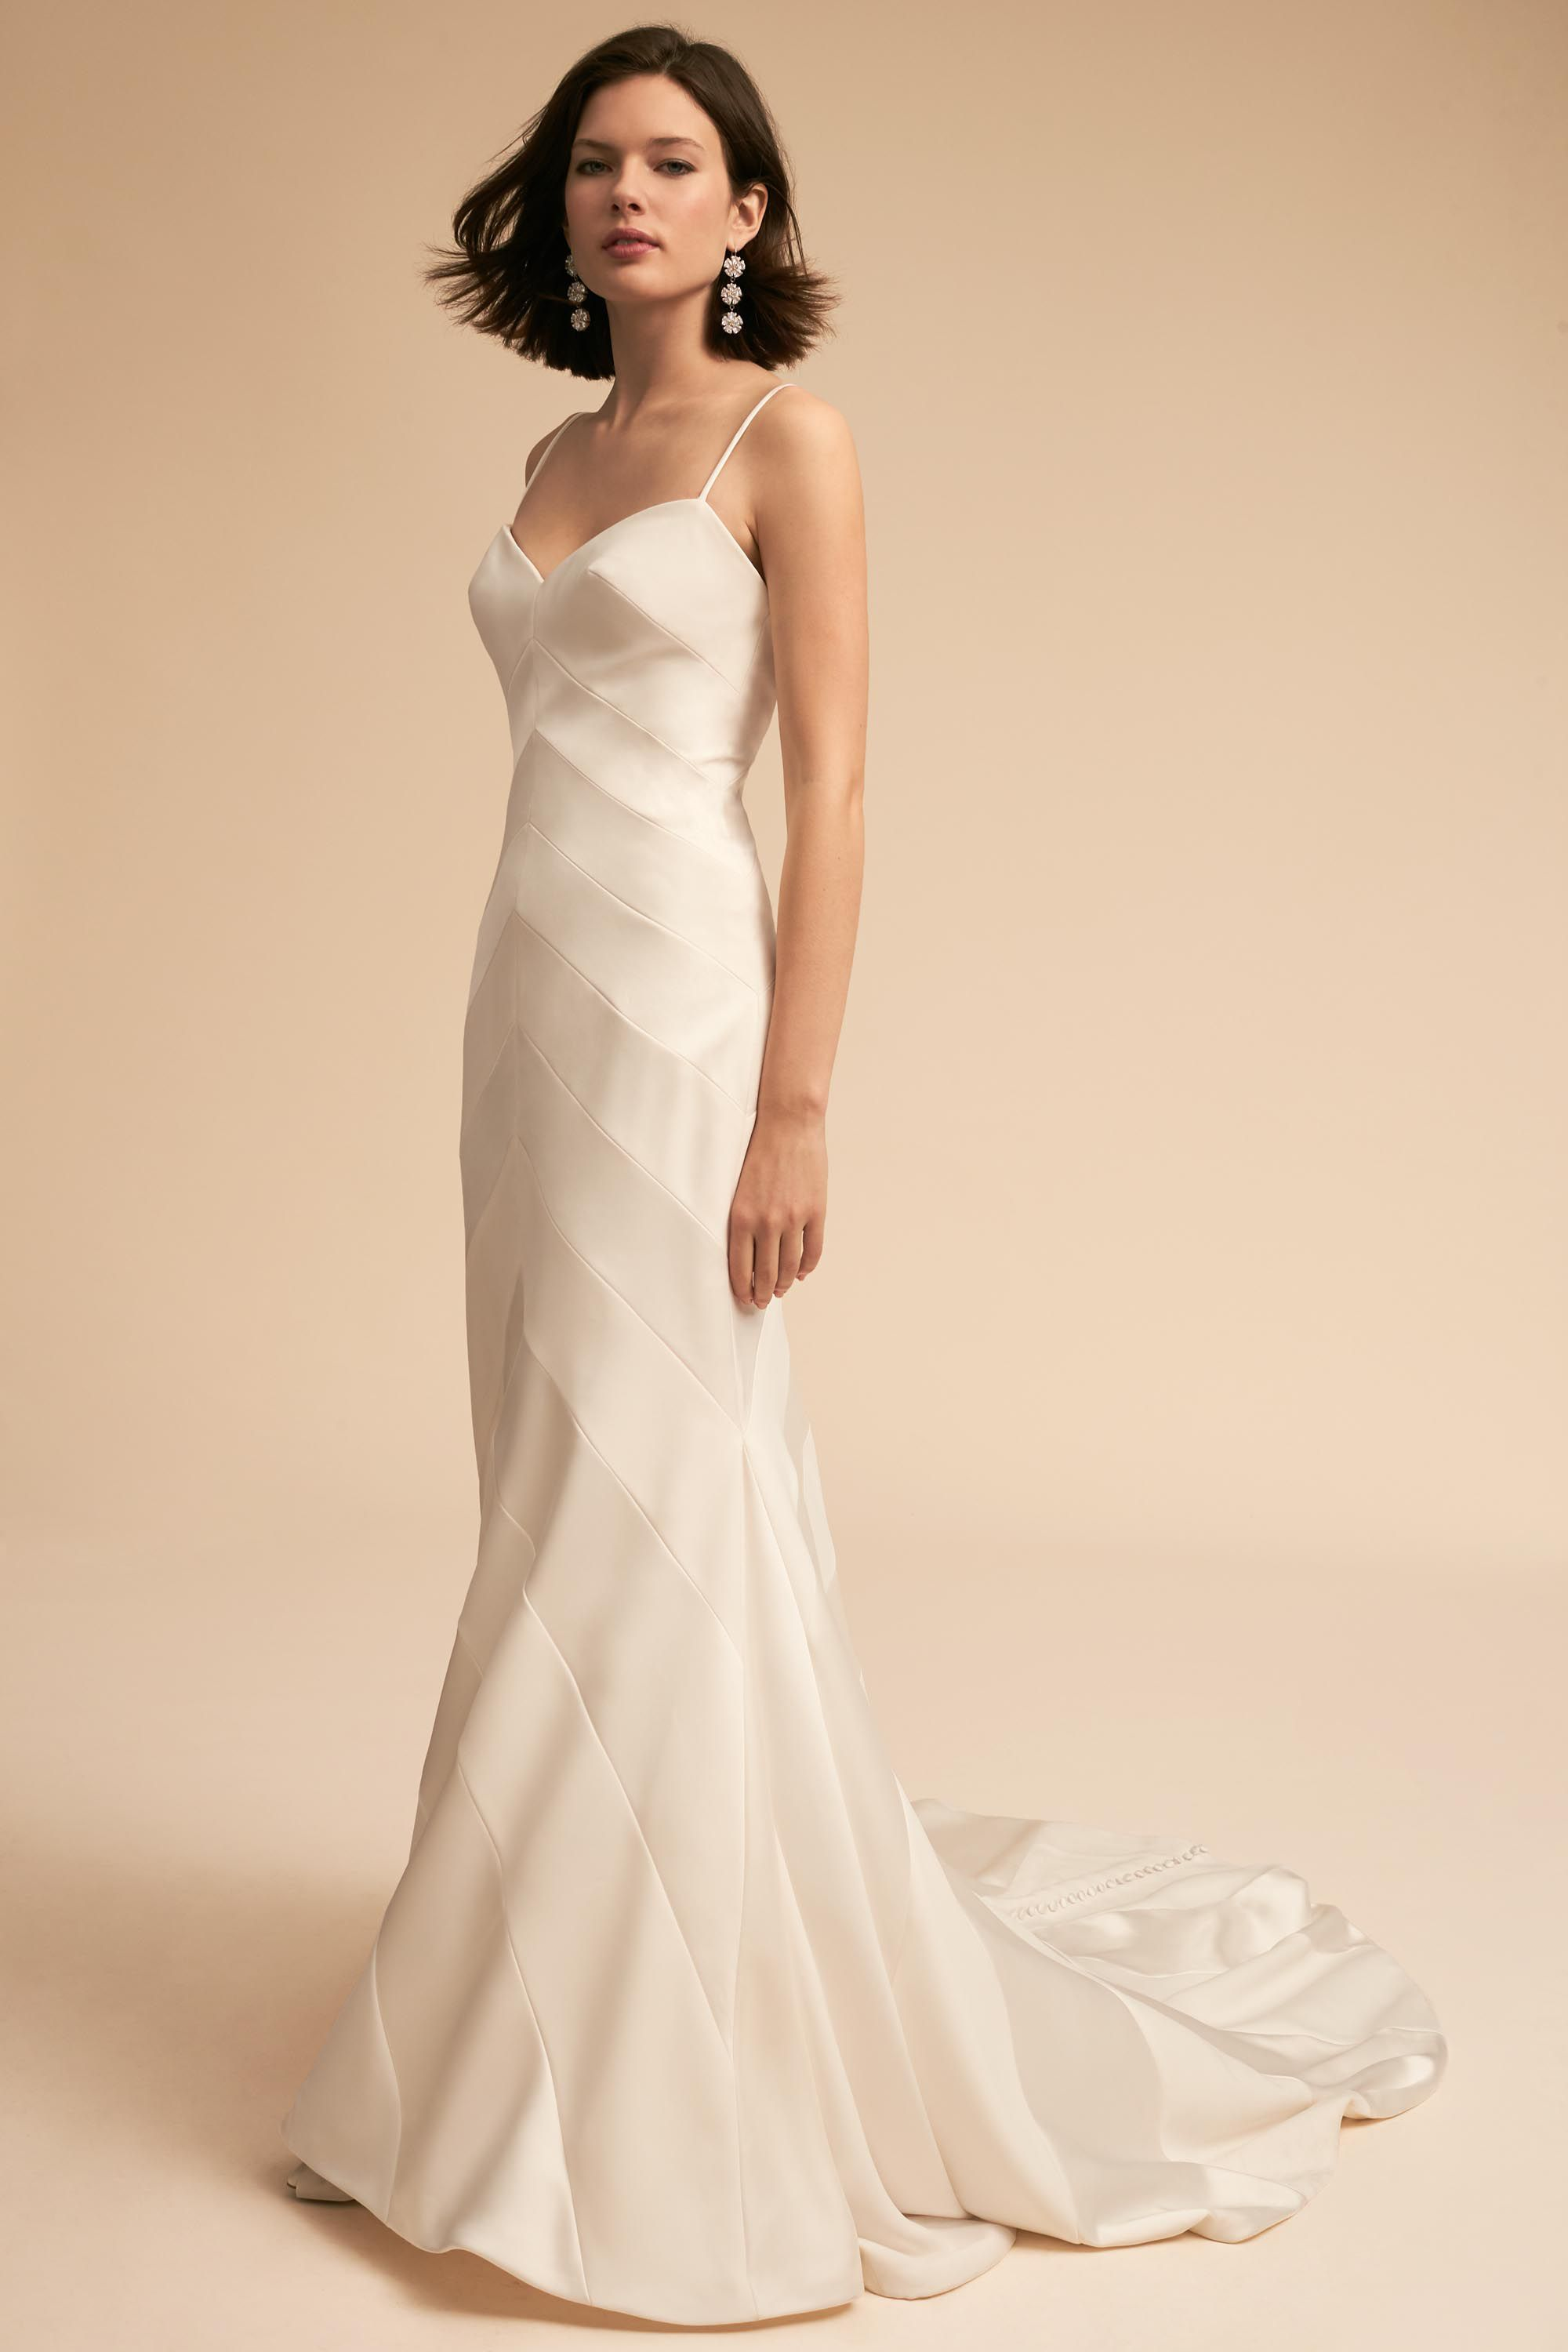 45270162 011 a?$browse l$ - Modern Wedding Dresses With Sleeves